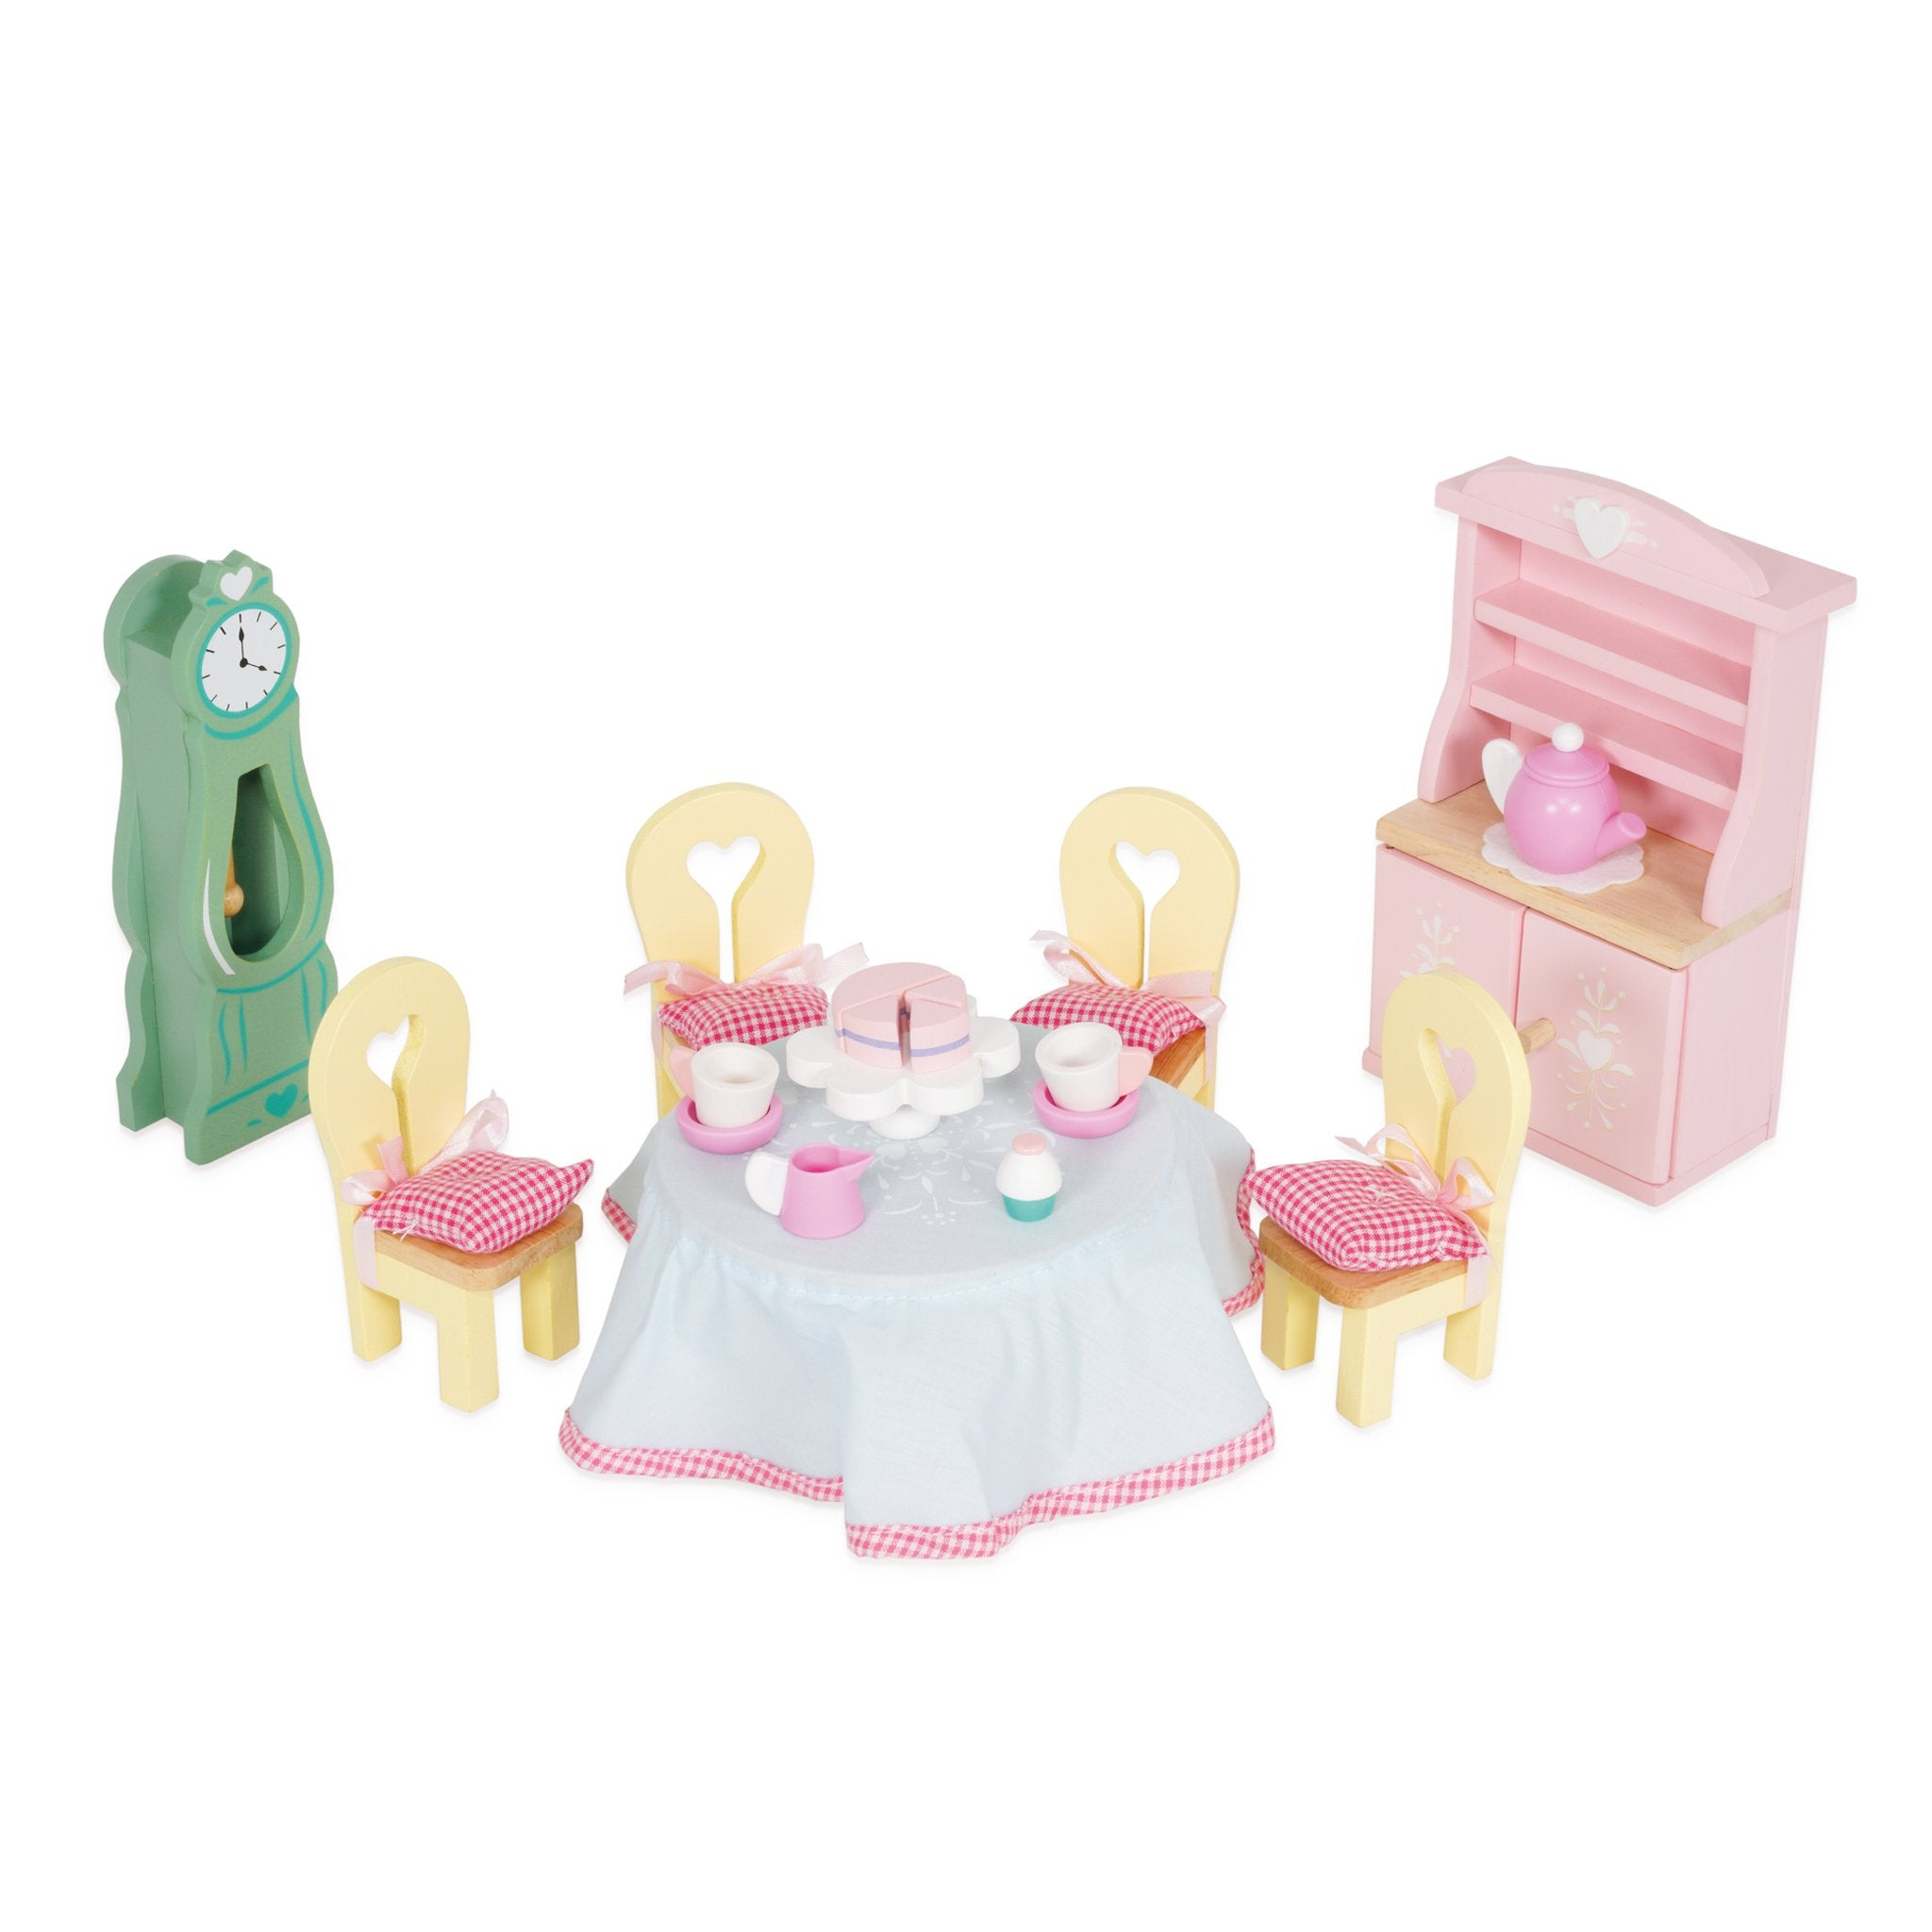 Daisylane Drawing Room Wooden Dollhouse Furniture